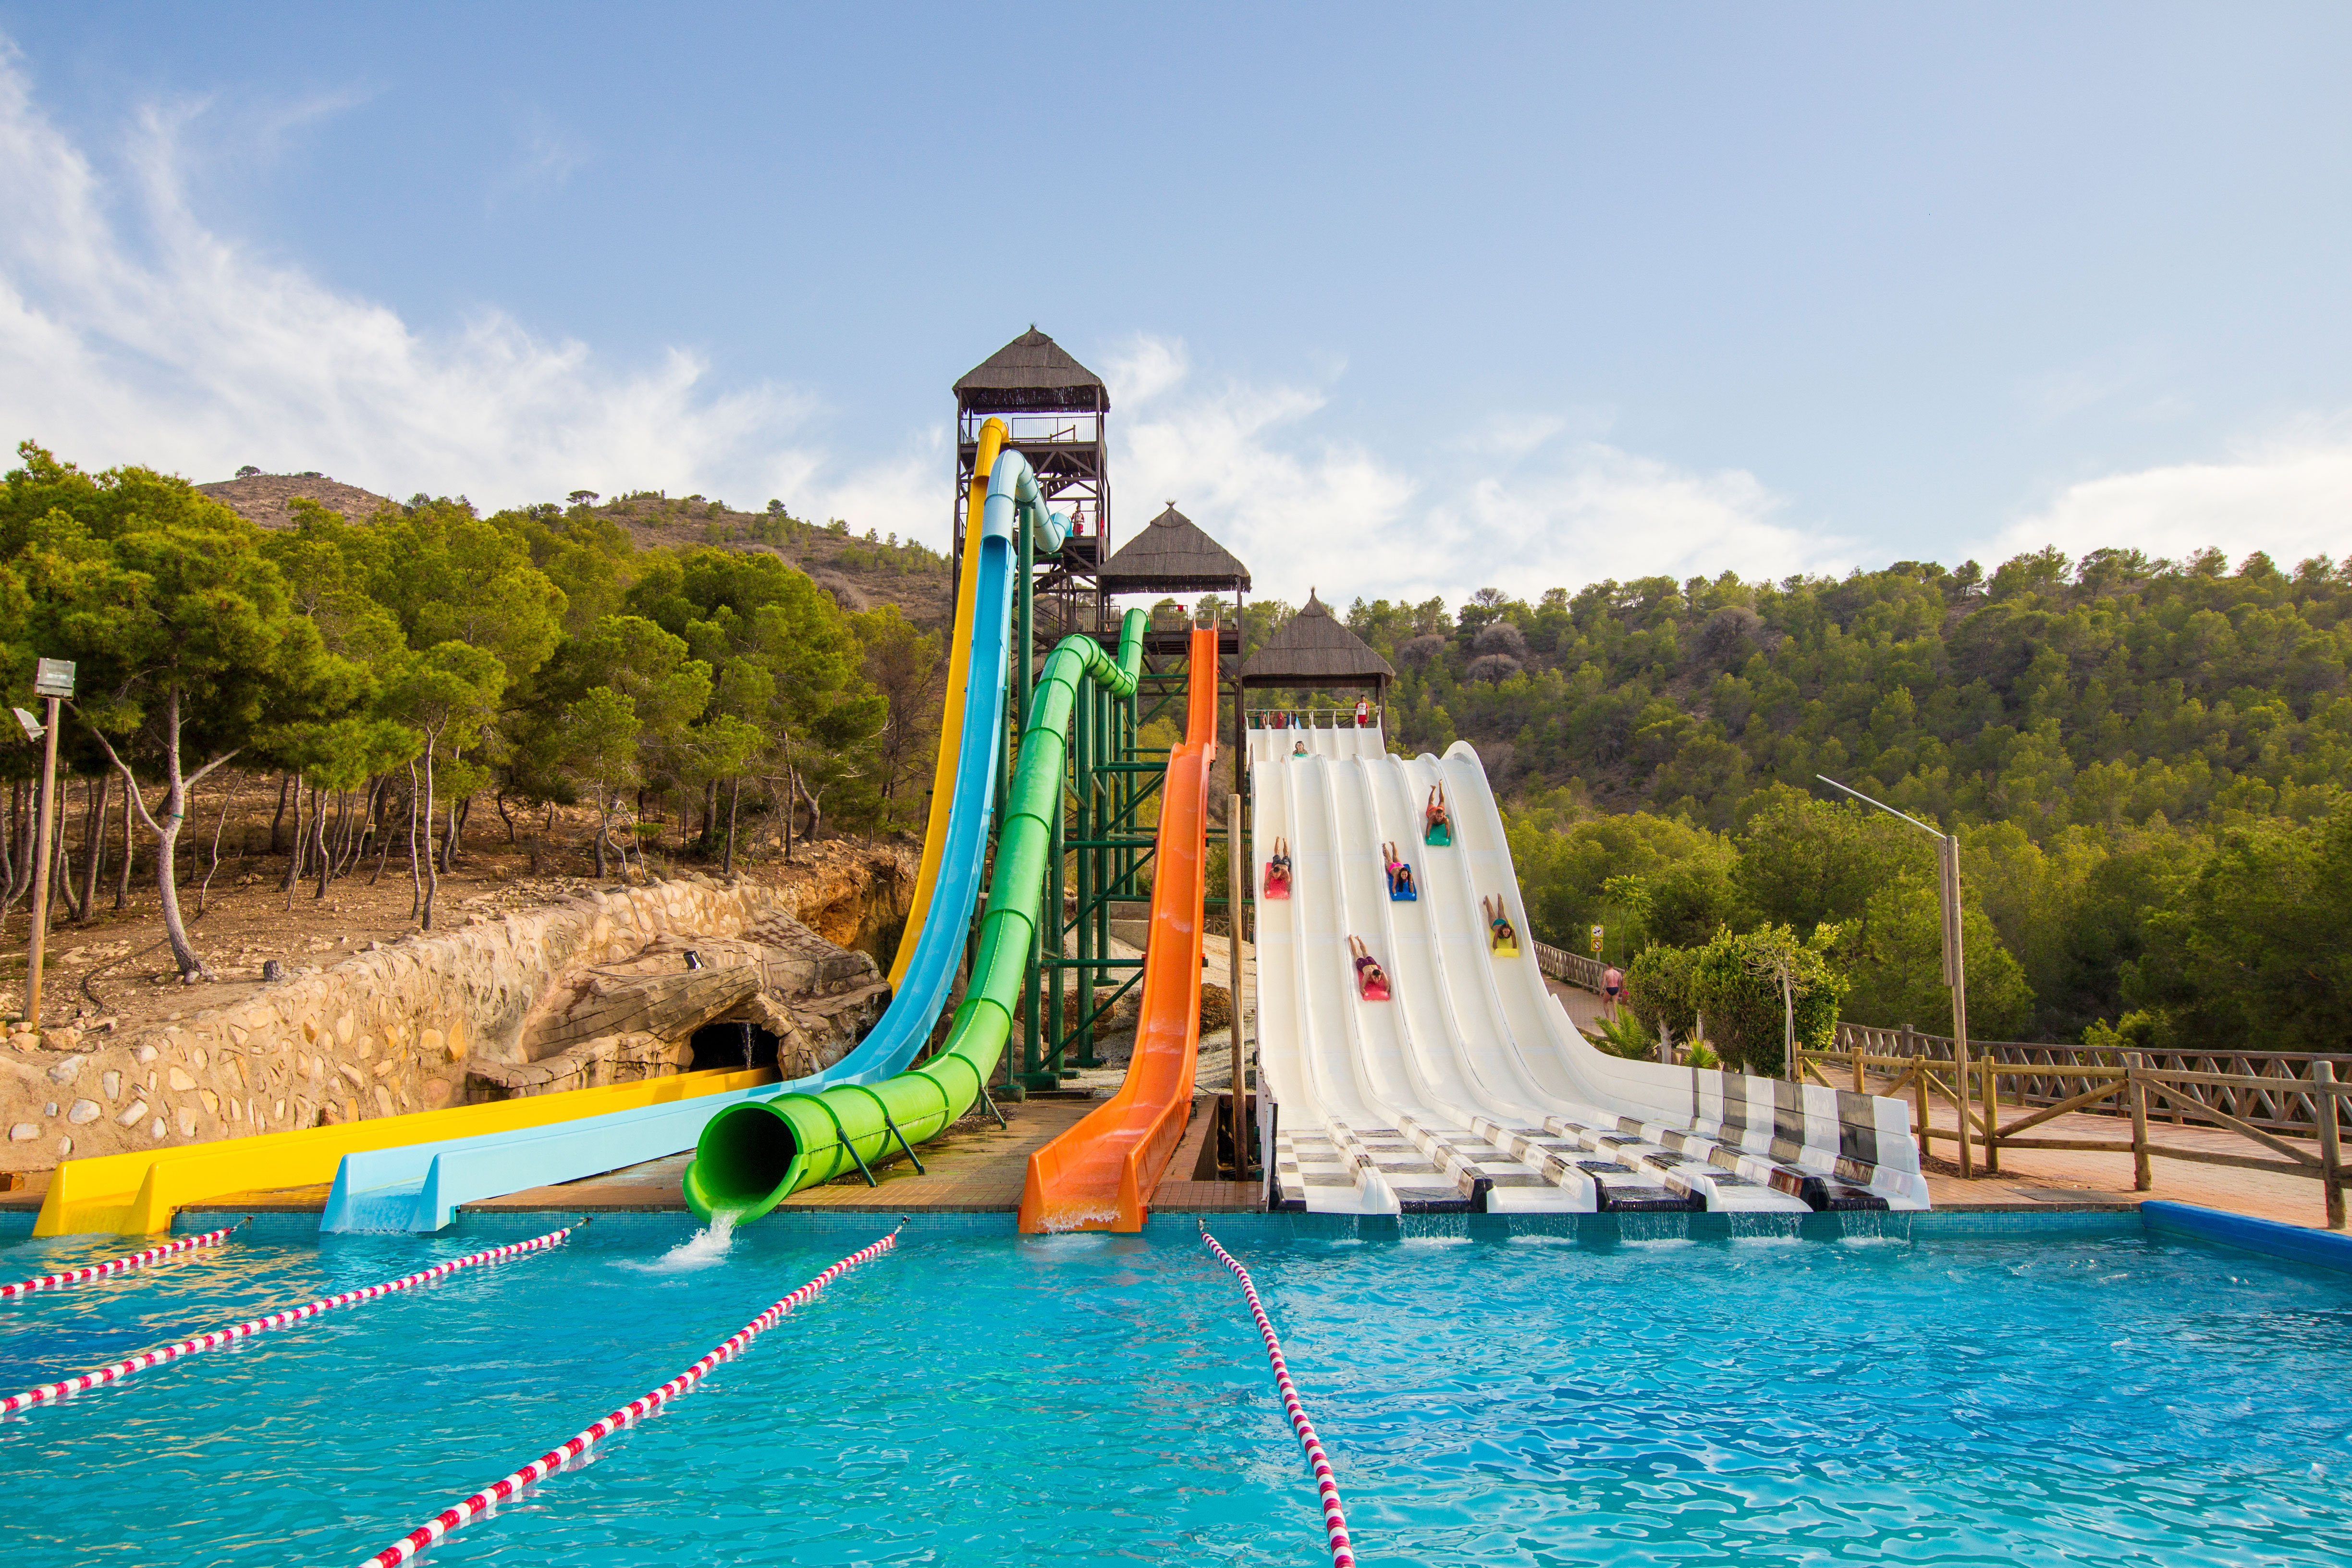 A Water Park for Adrenaline Junkies